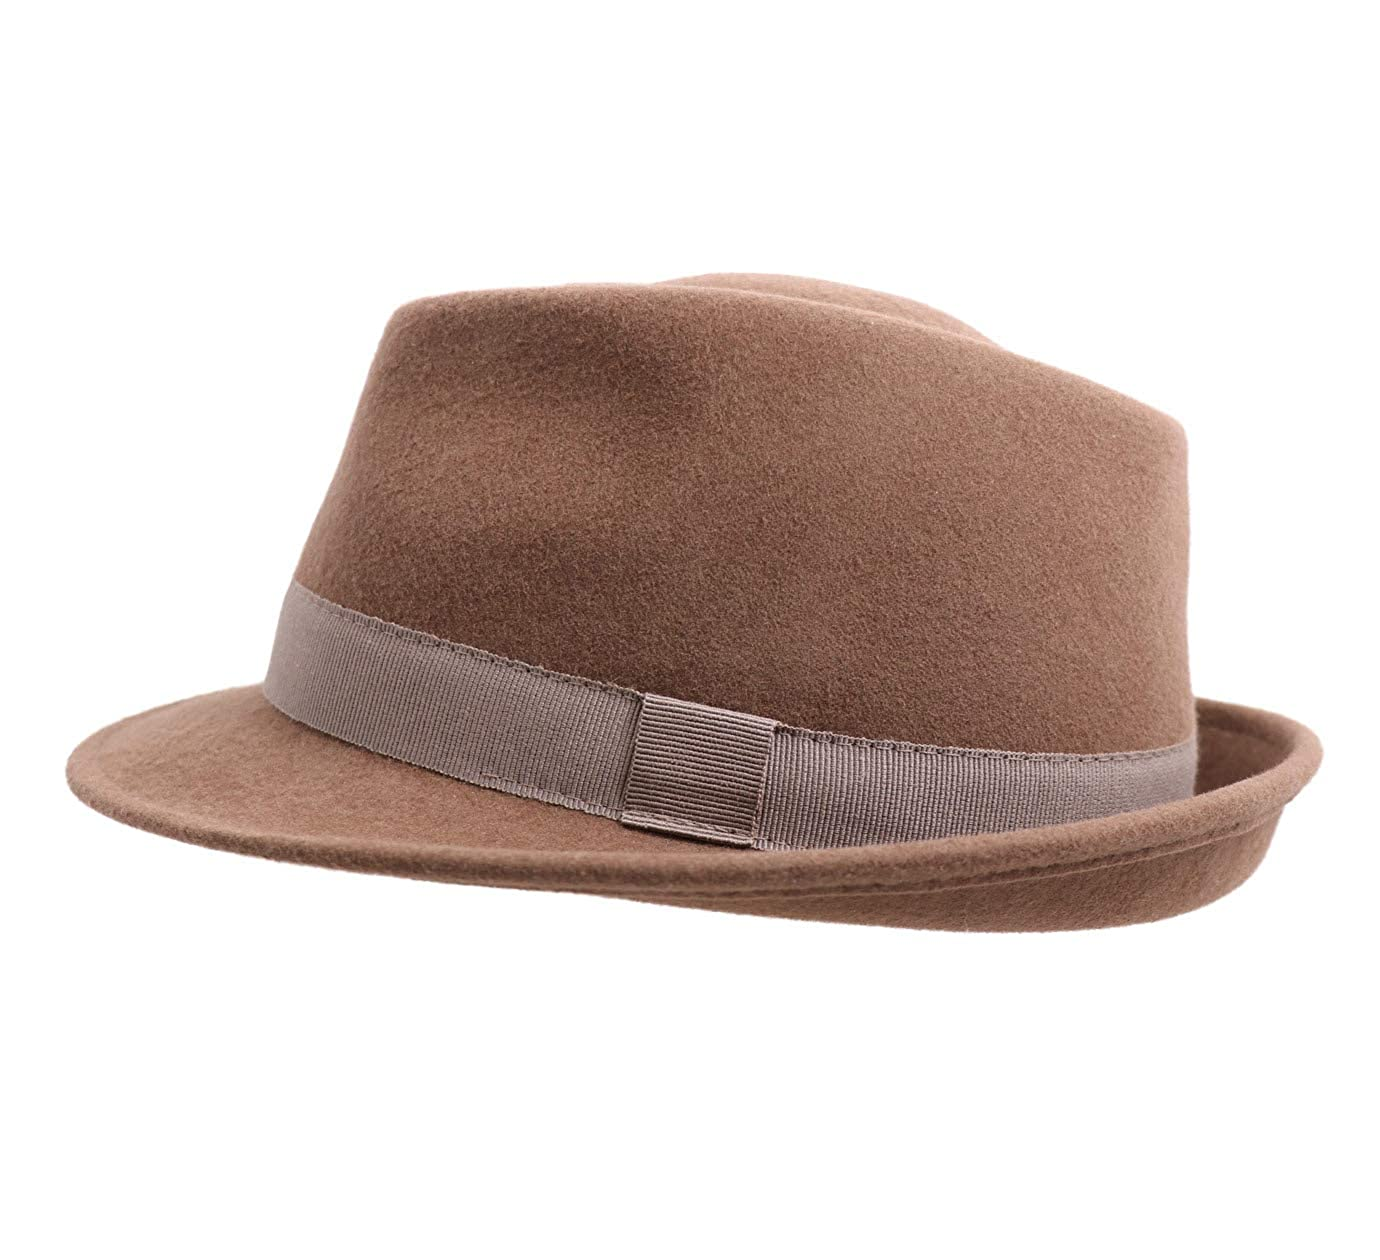 Classic Italy Trilby Wool Felt Trilby Hat Size 54 cm Brown-Clair